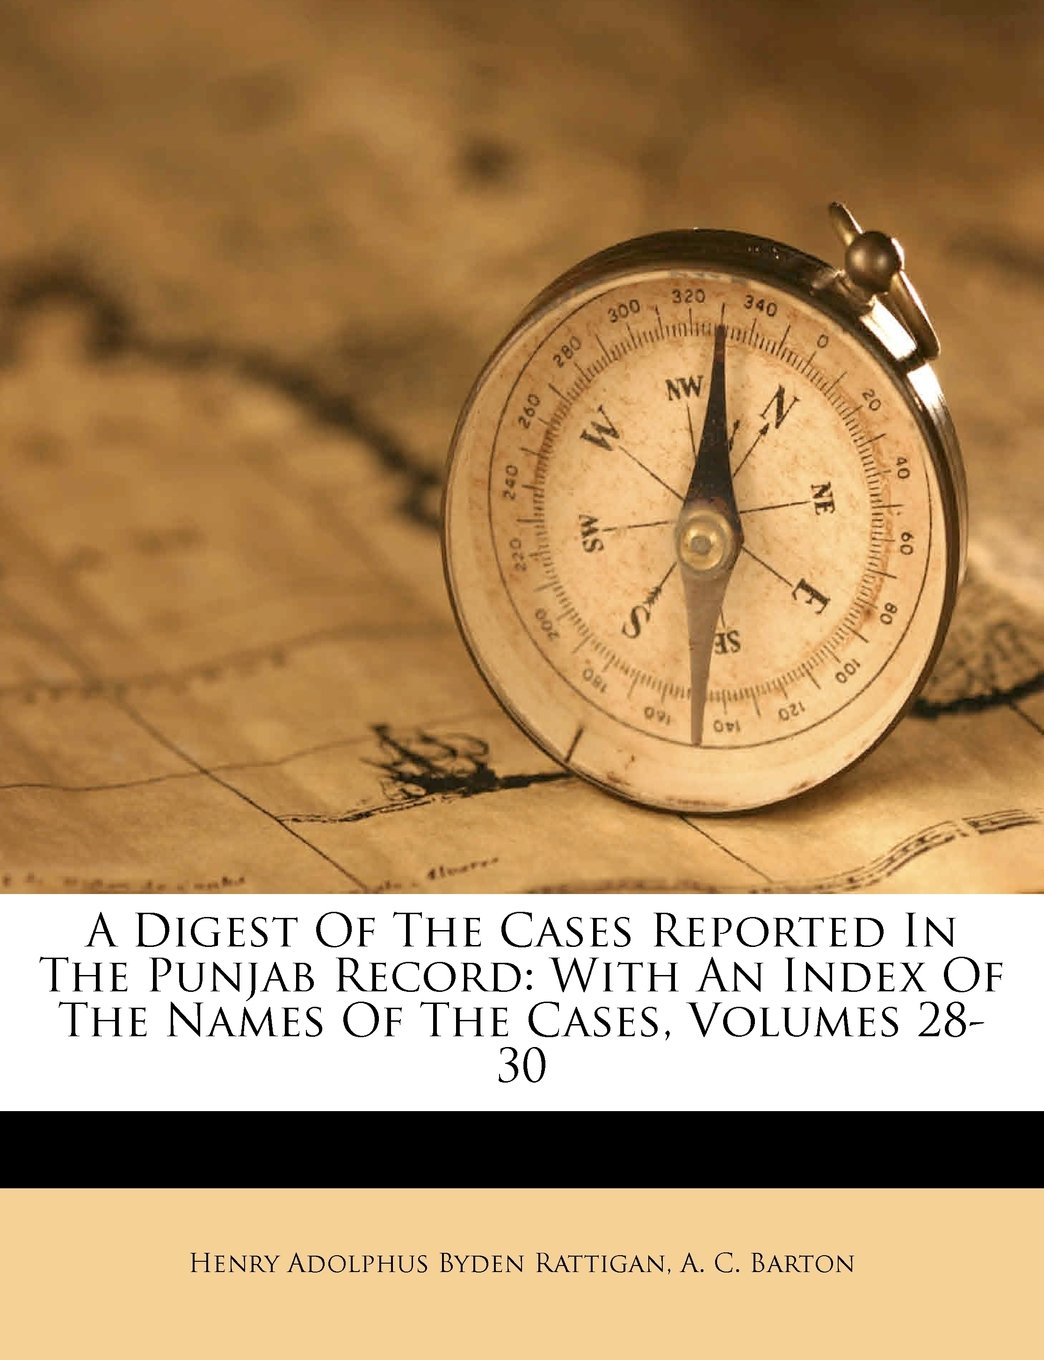 A Digest Of The Cases Reported In The Punjab Record: With An Index Of The Names Of The Cases, Volumes 28-30 pdf